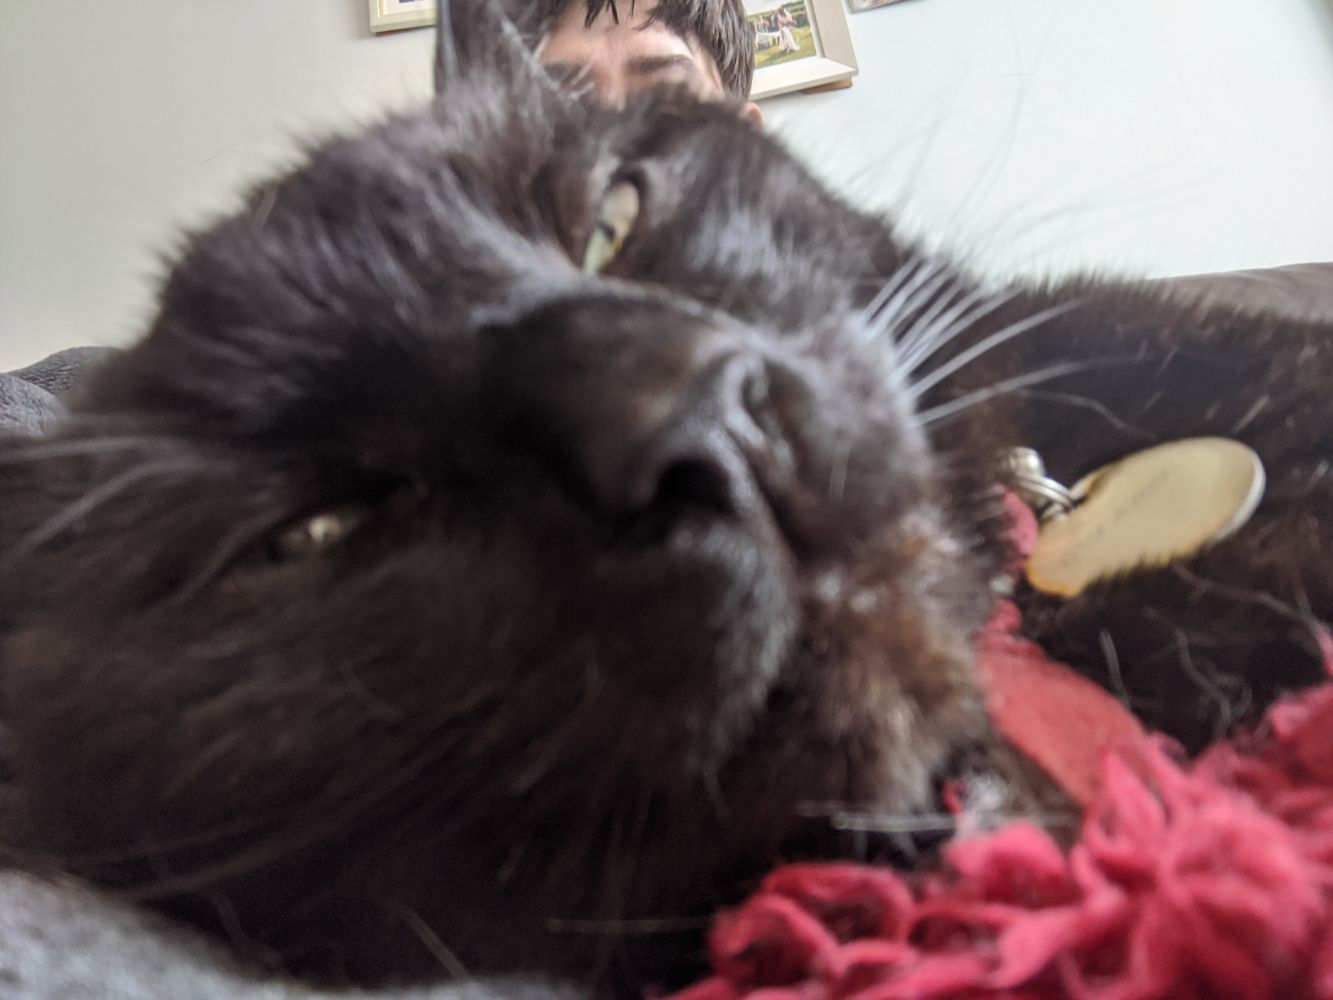 Black cat in the foreground, slightly blurry, as it is an intentionally bad selfie, with just the top of Jamie's head visible above Morph's